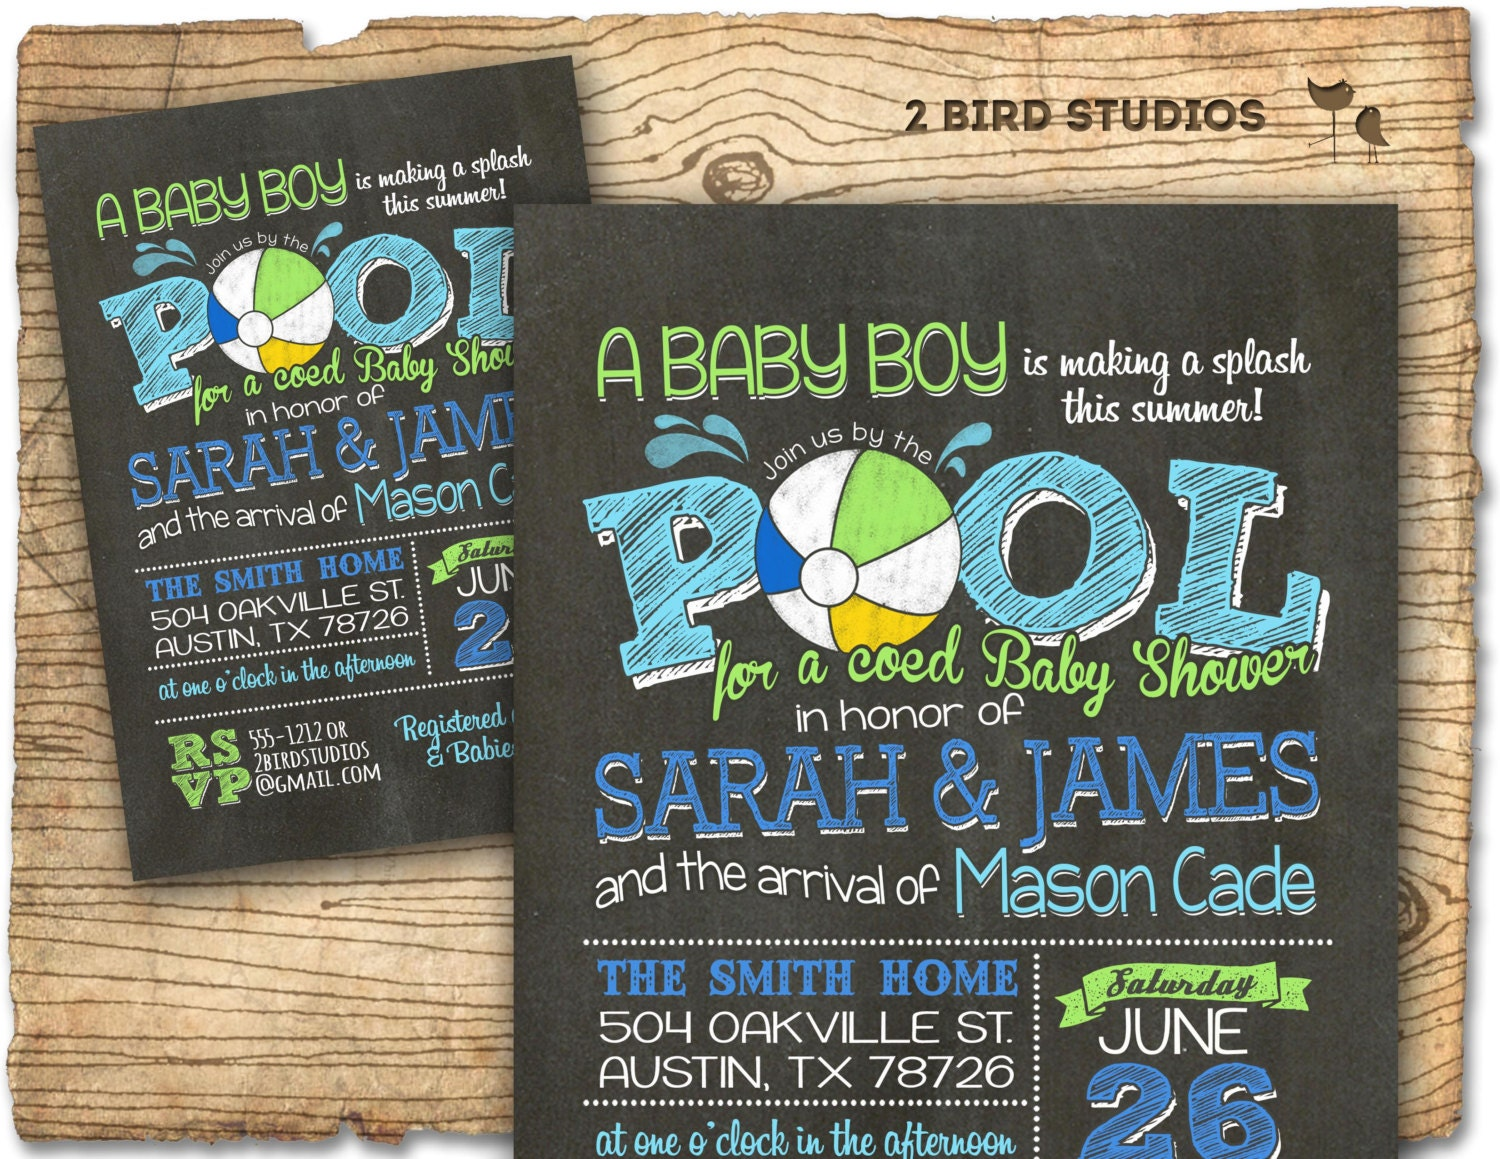 Coed baby shower invitation Summer baby shower Pool